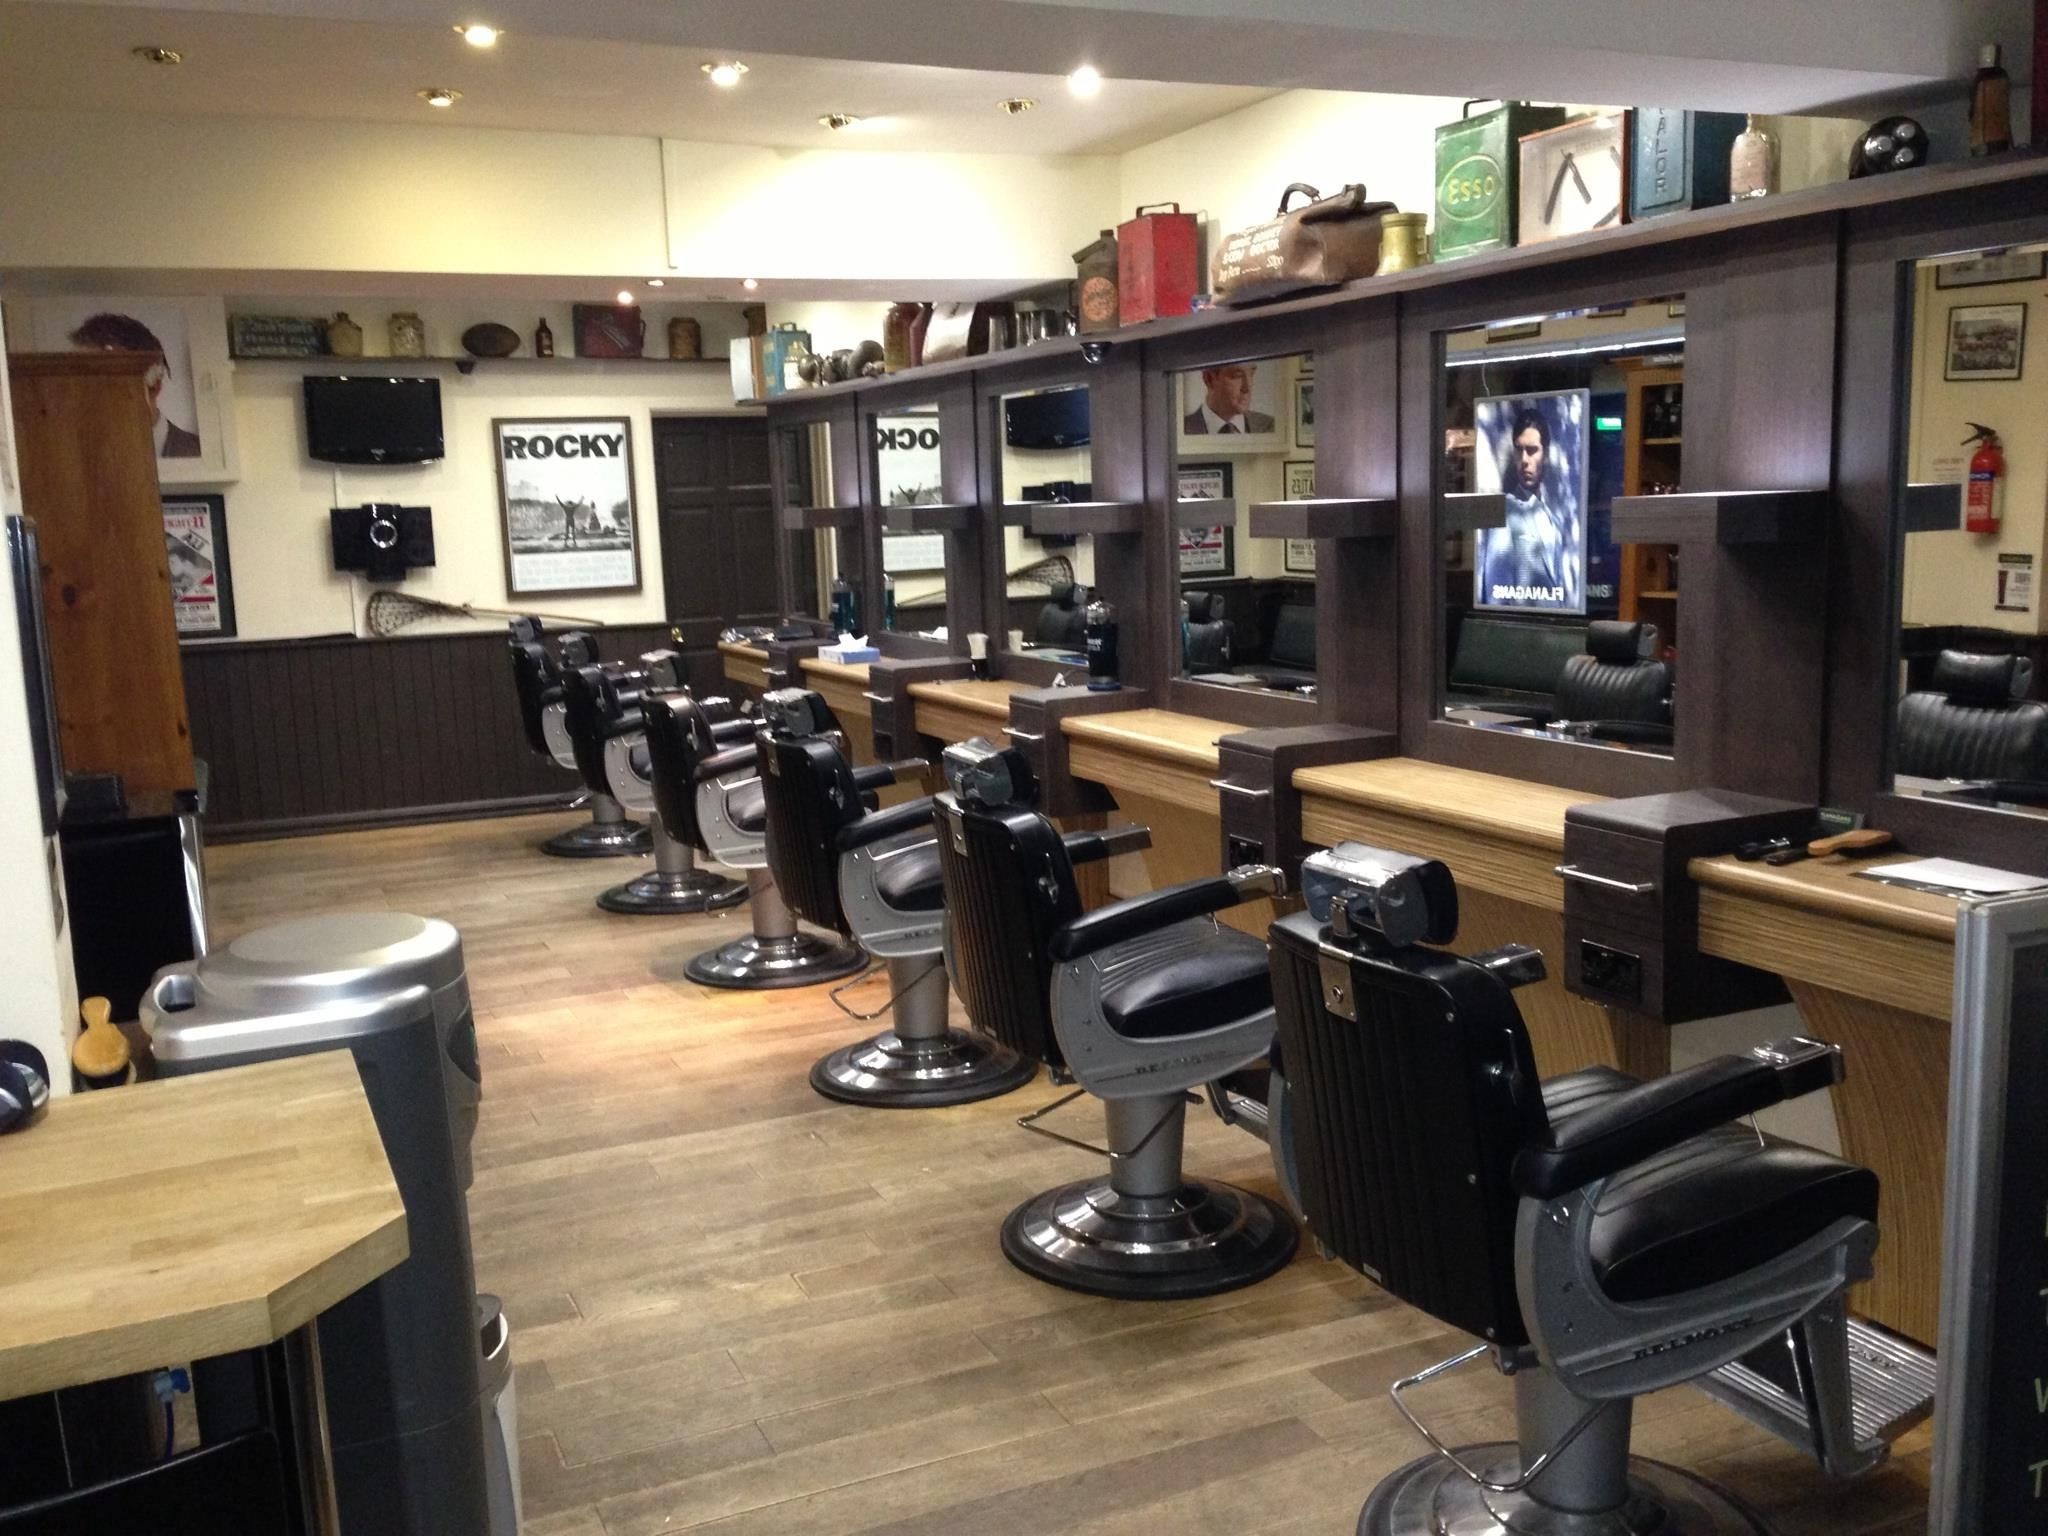 Barber shop ideas - Cool Up To Date Barbershop